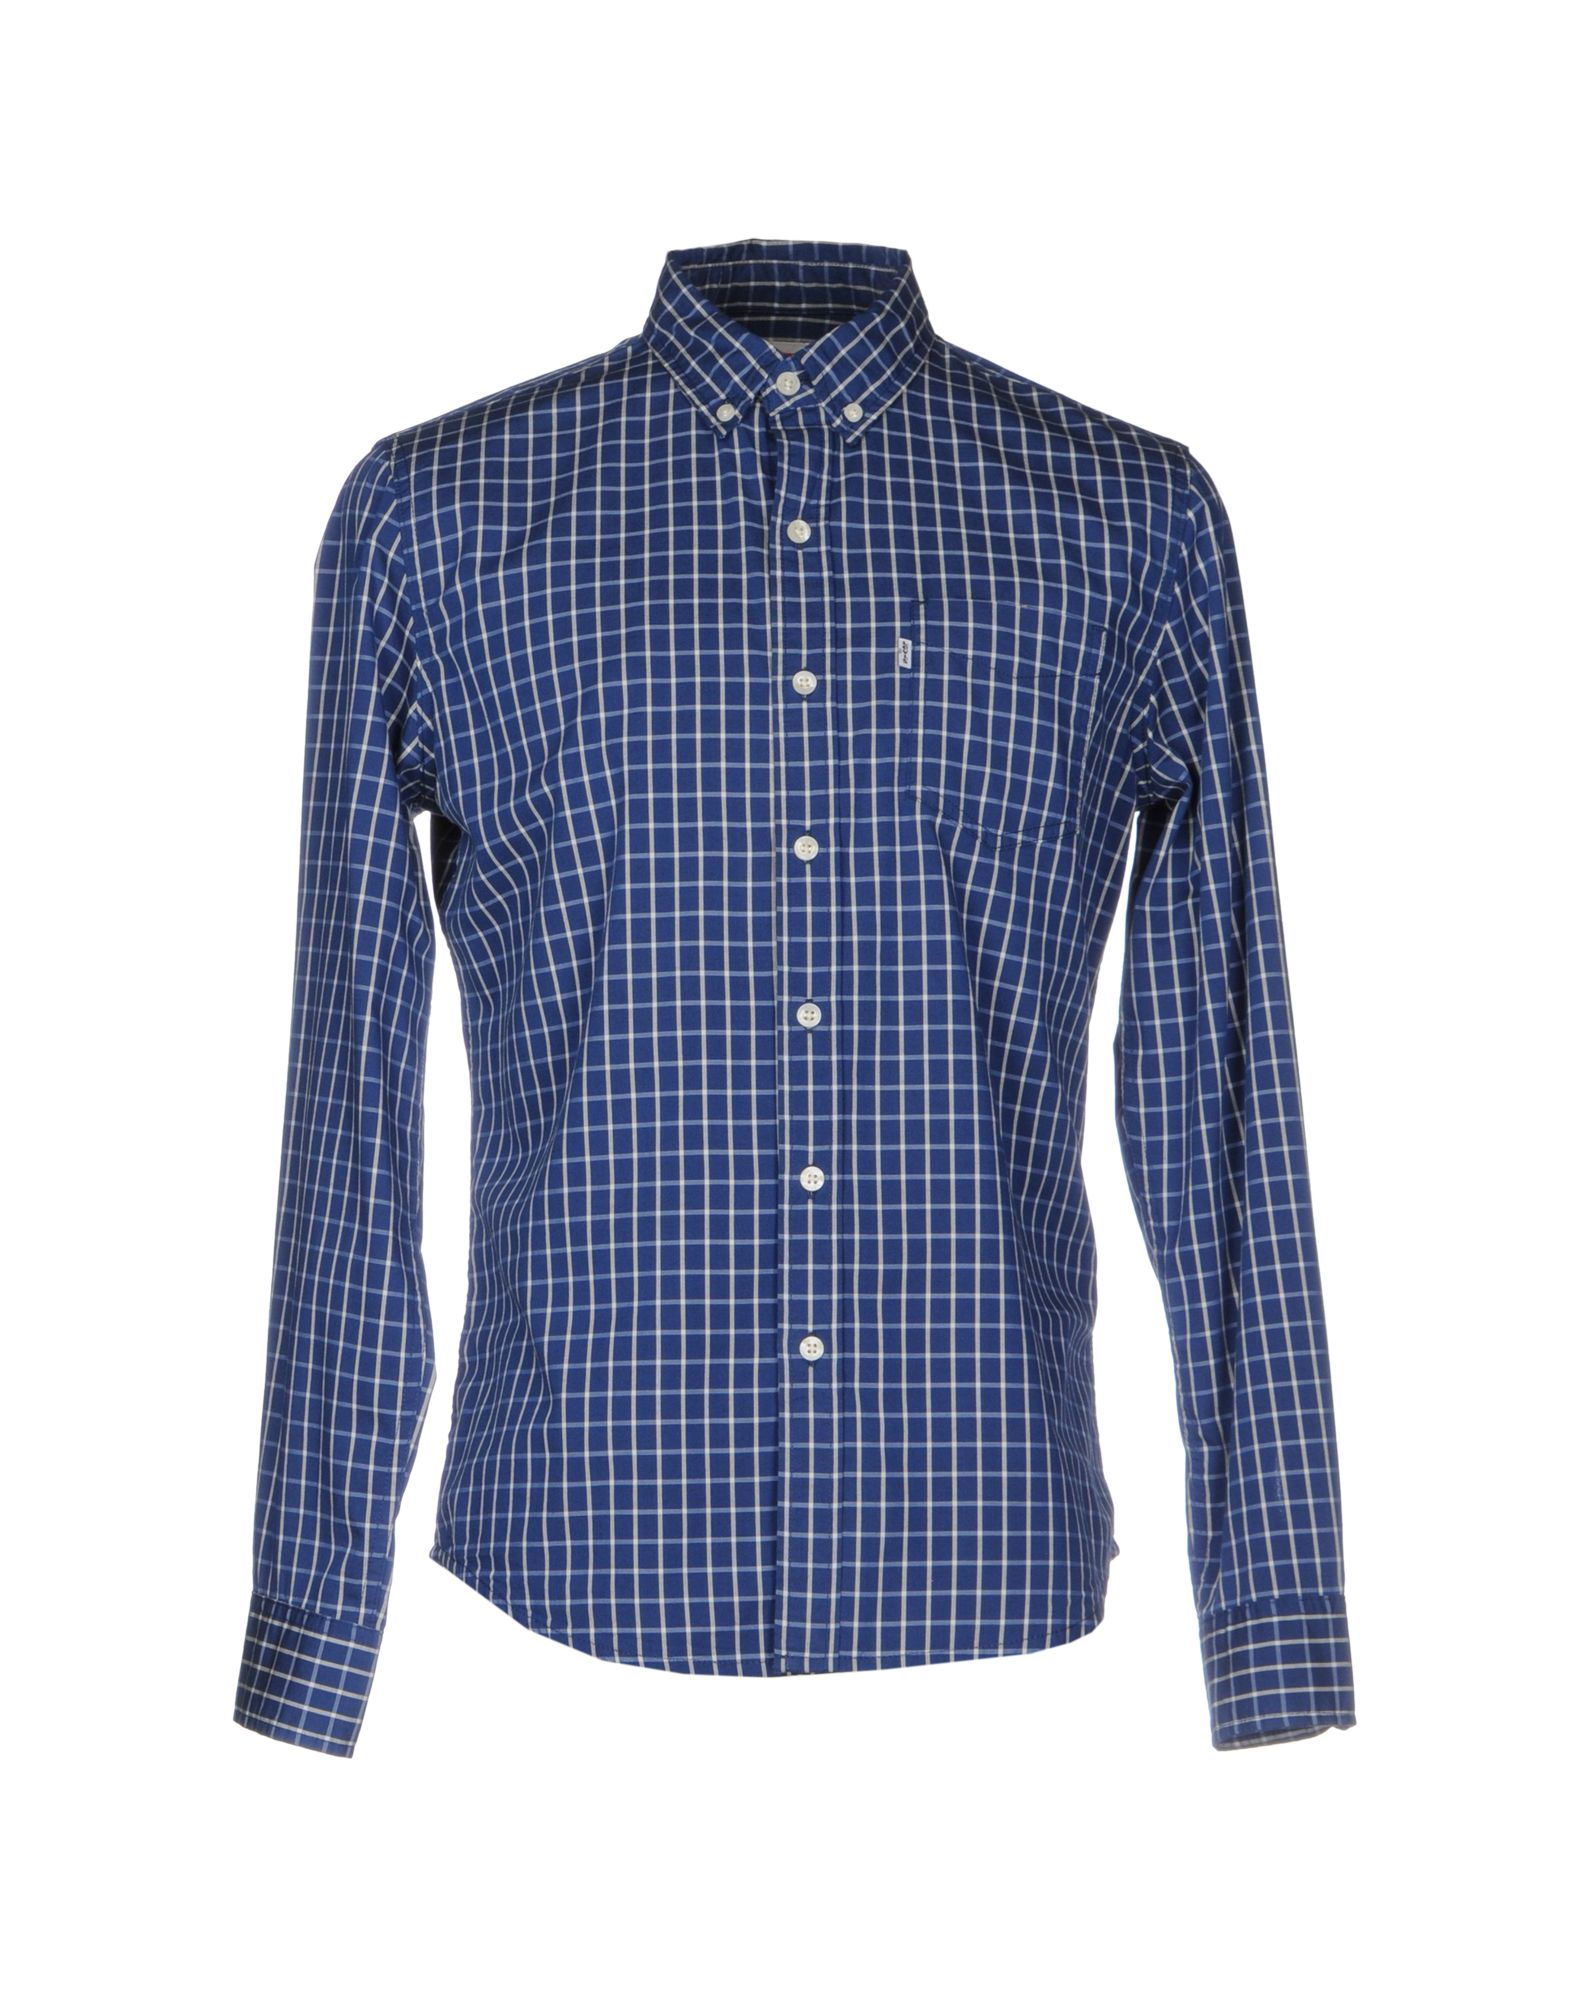 LEVI'S RED TAB Shirts